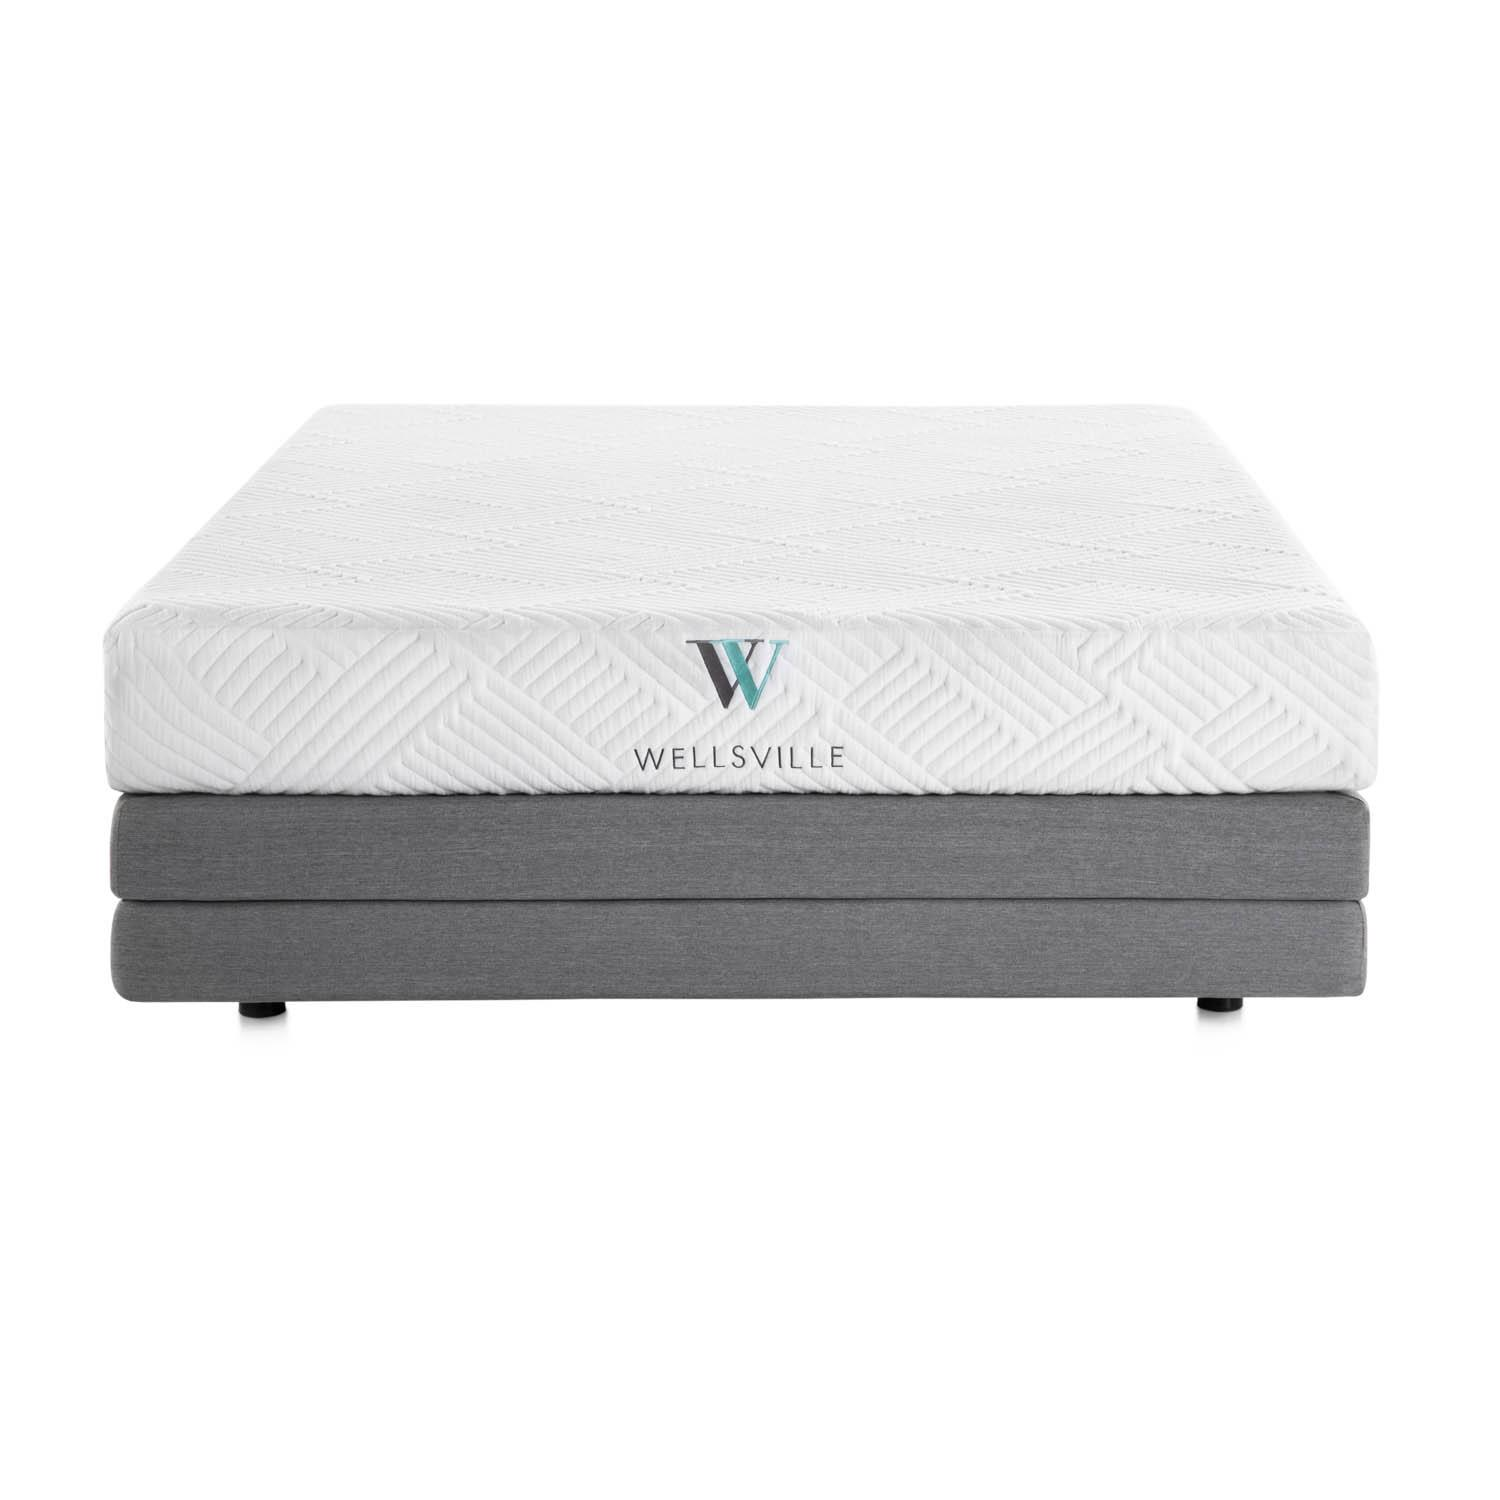 Wellsville 14 Inch Gel Hybrid Mattress Queen,Bayit Furniture Line